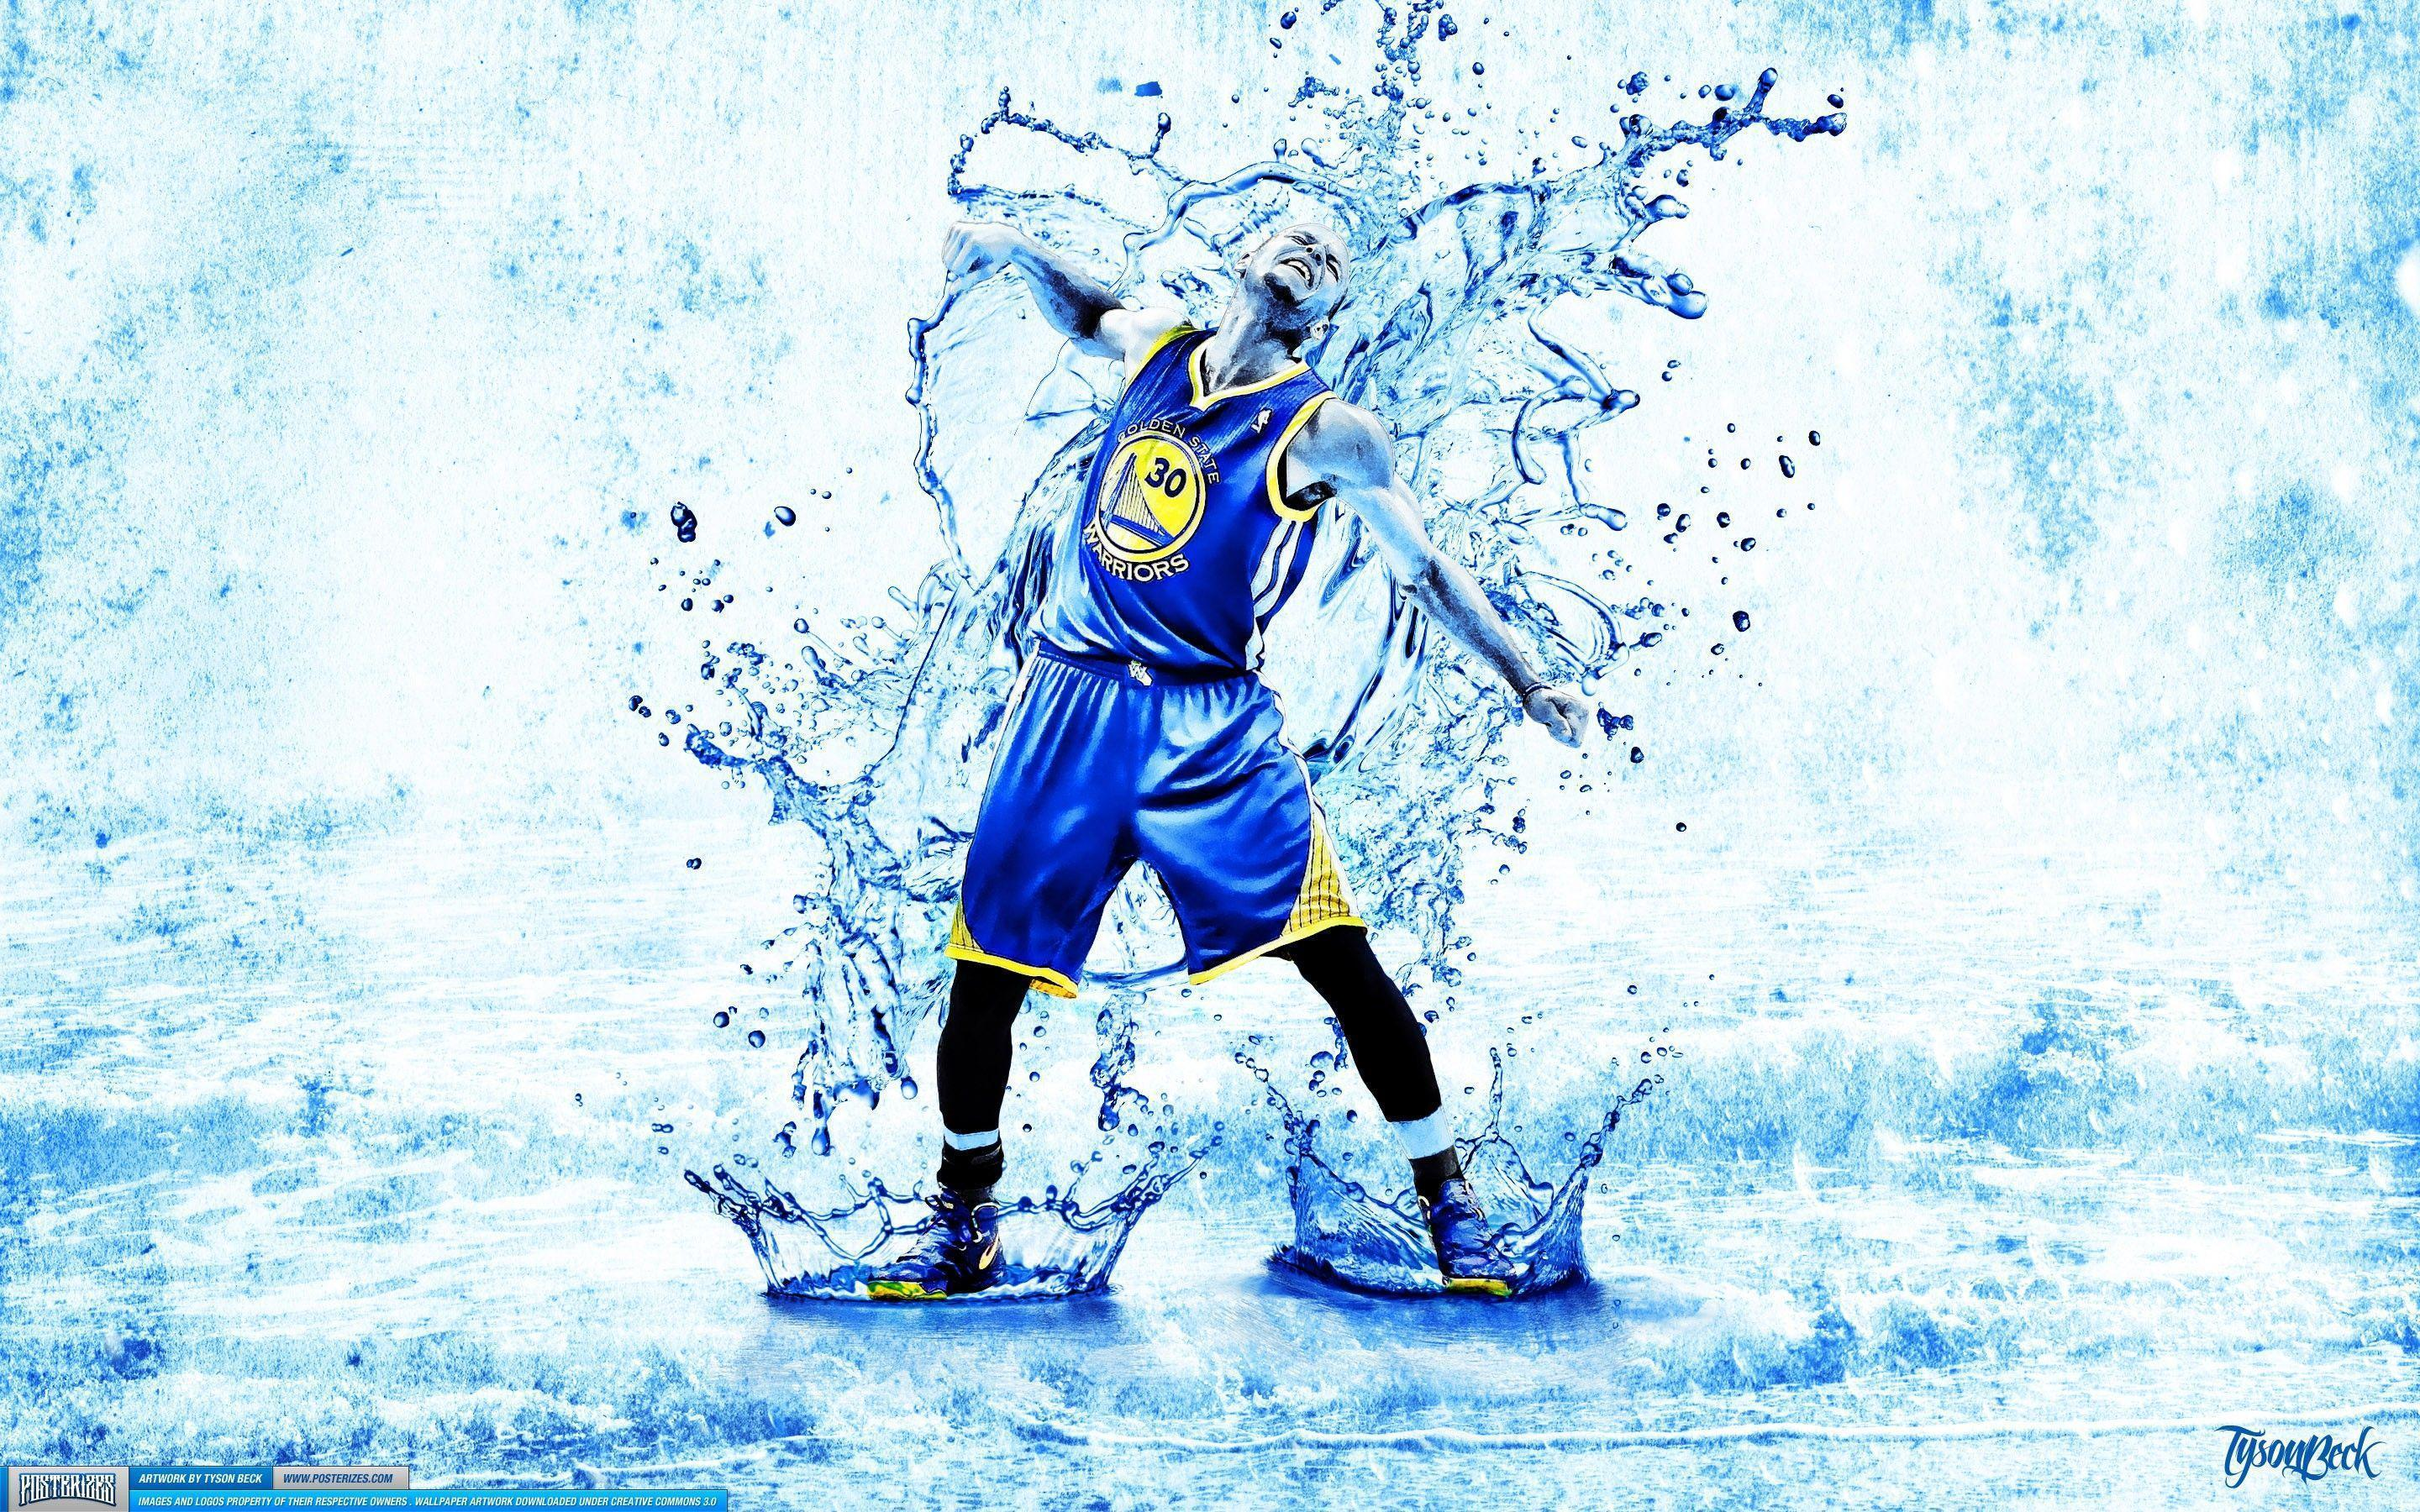 Stephen Curry 2015 Golden State Warriors NBA Wallpapers free